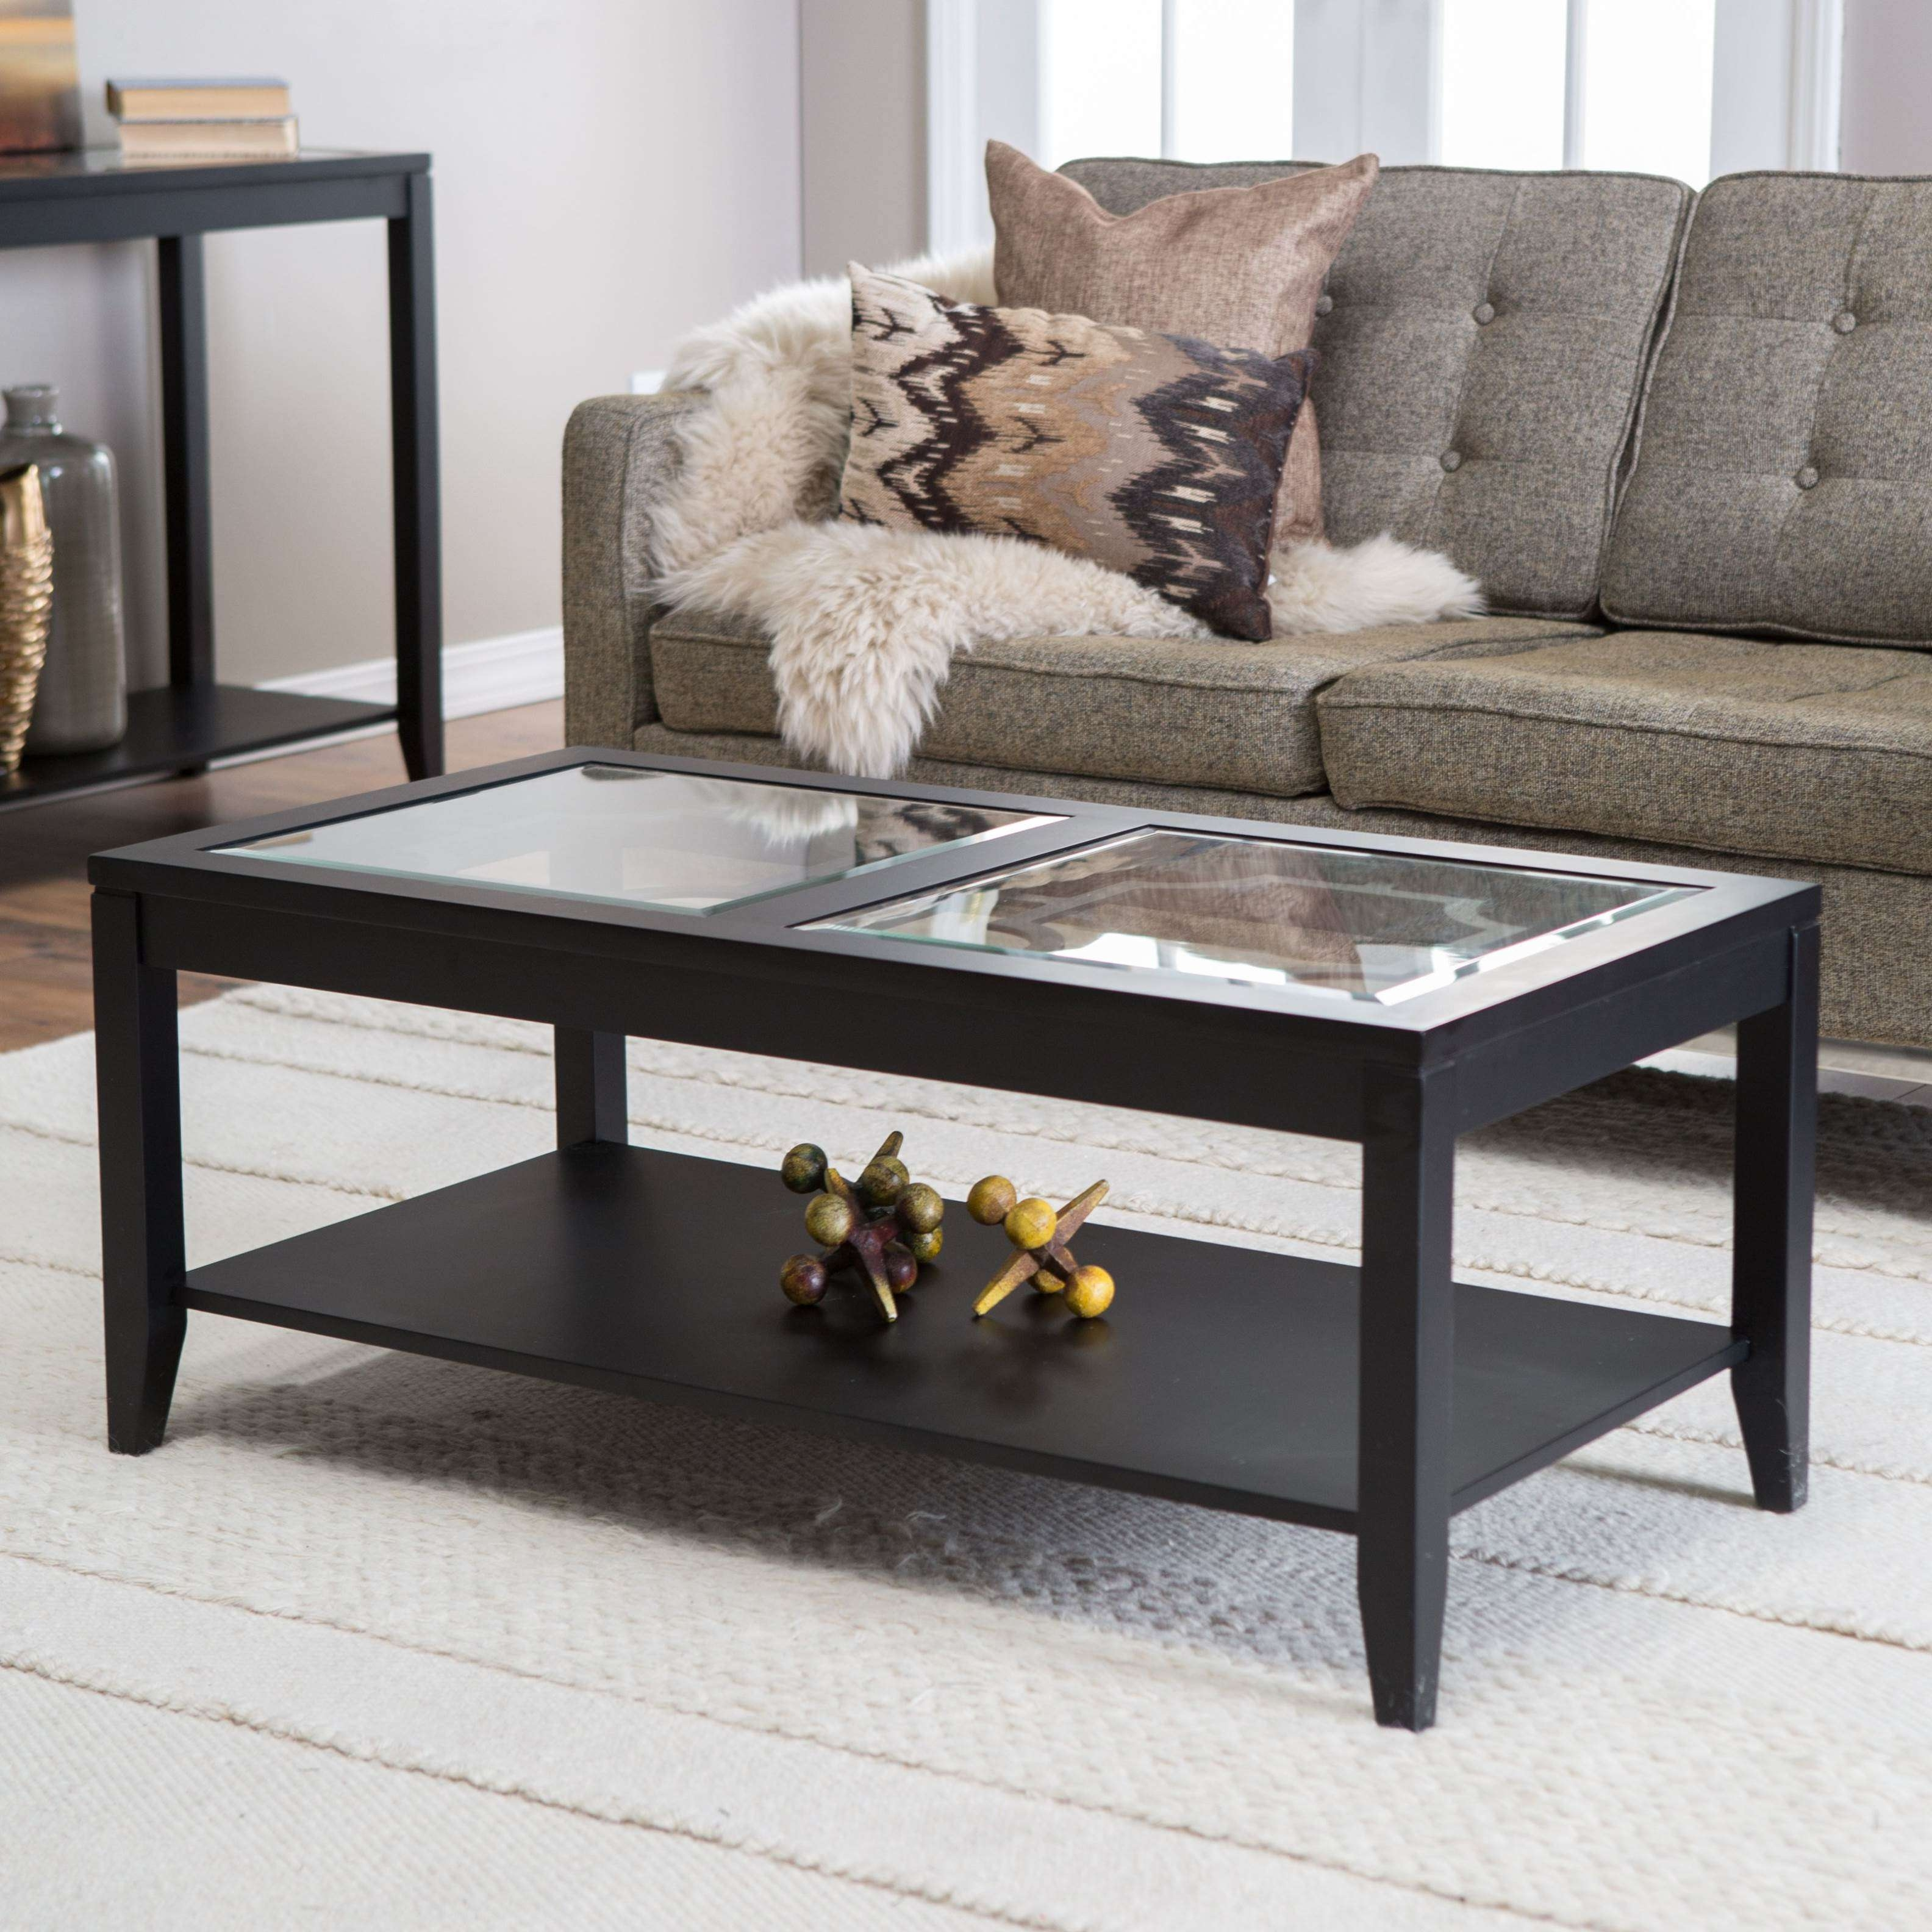 Most Recent Rectangle Glass Coffee Table For Glass Coffee Tables For More Joyful Excitements (View 15 of 20)